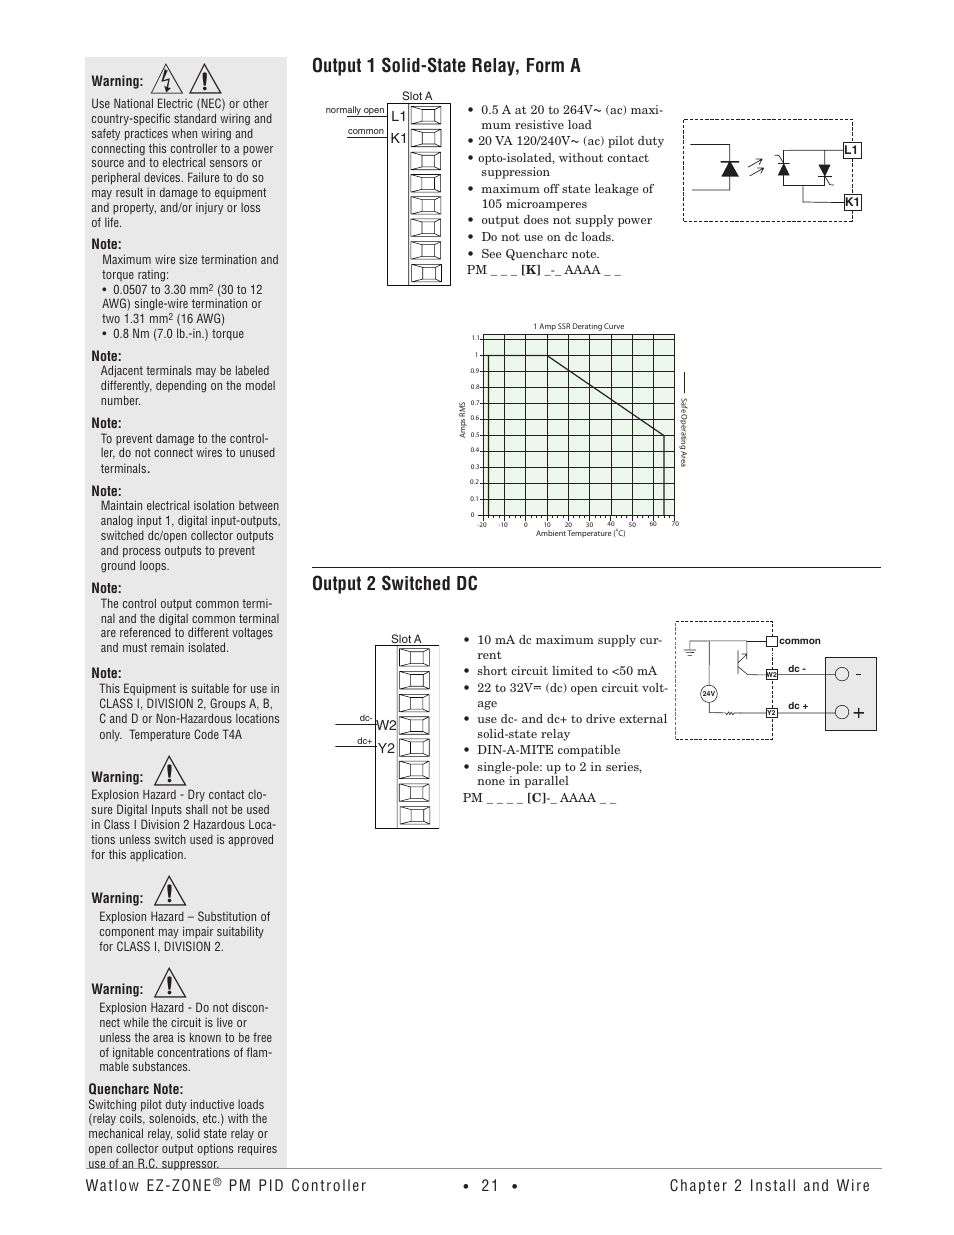 Output 1 solid-state relay, form a, Output 2 switched dc